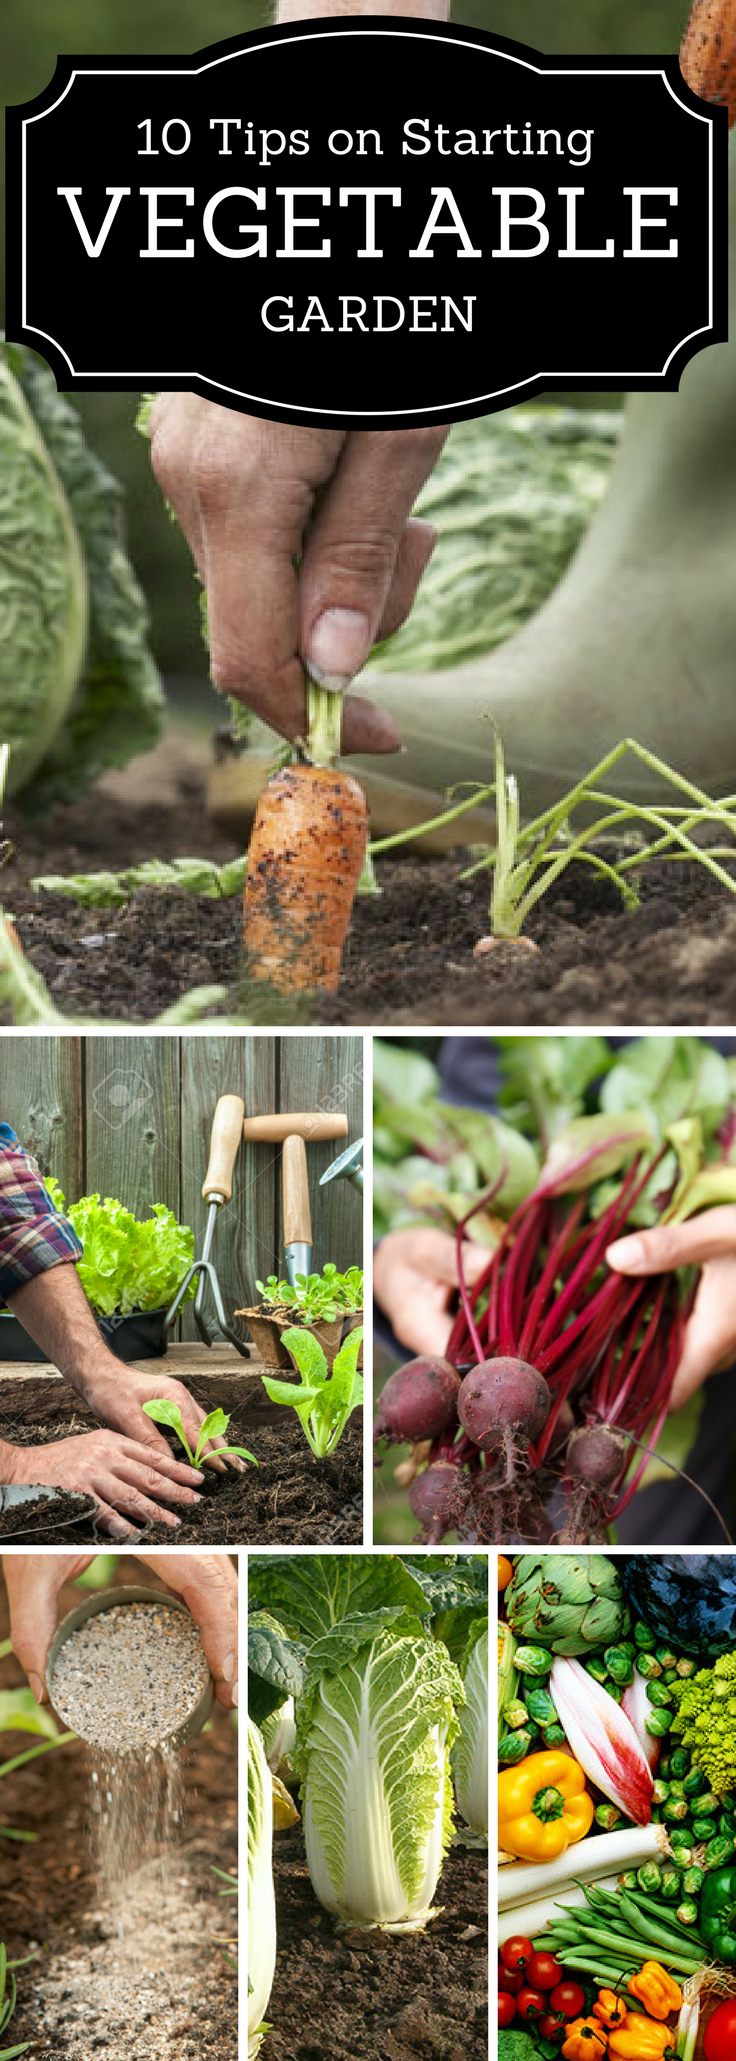 Vegetable Garden Top 10 Tips On Starting Your Own 2018 400 x 300